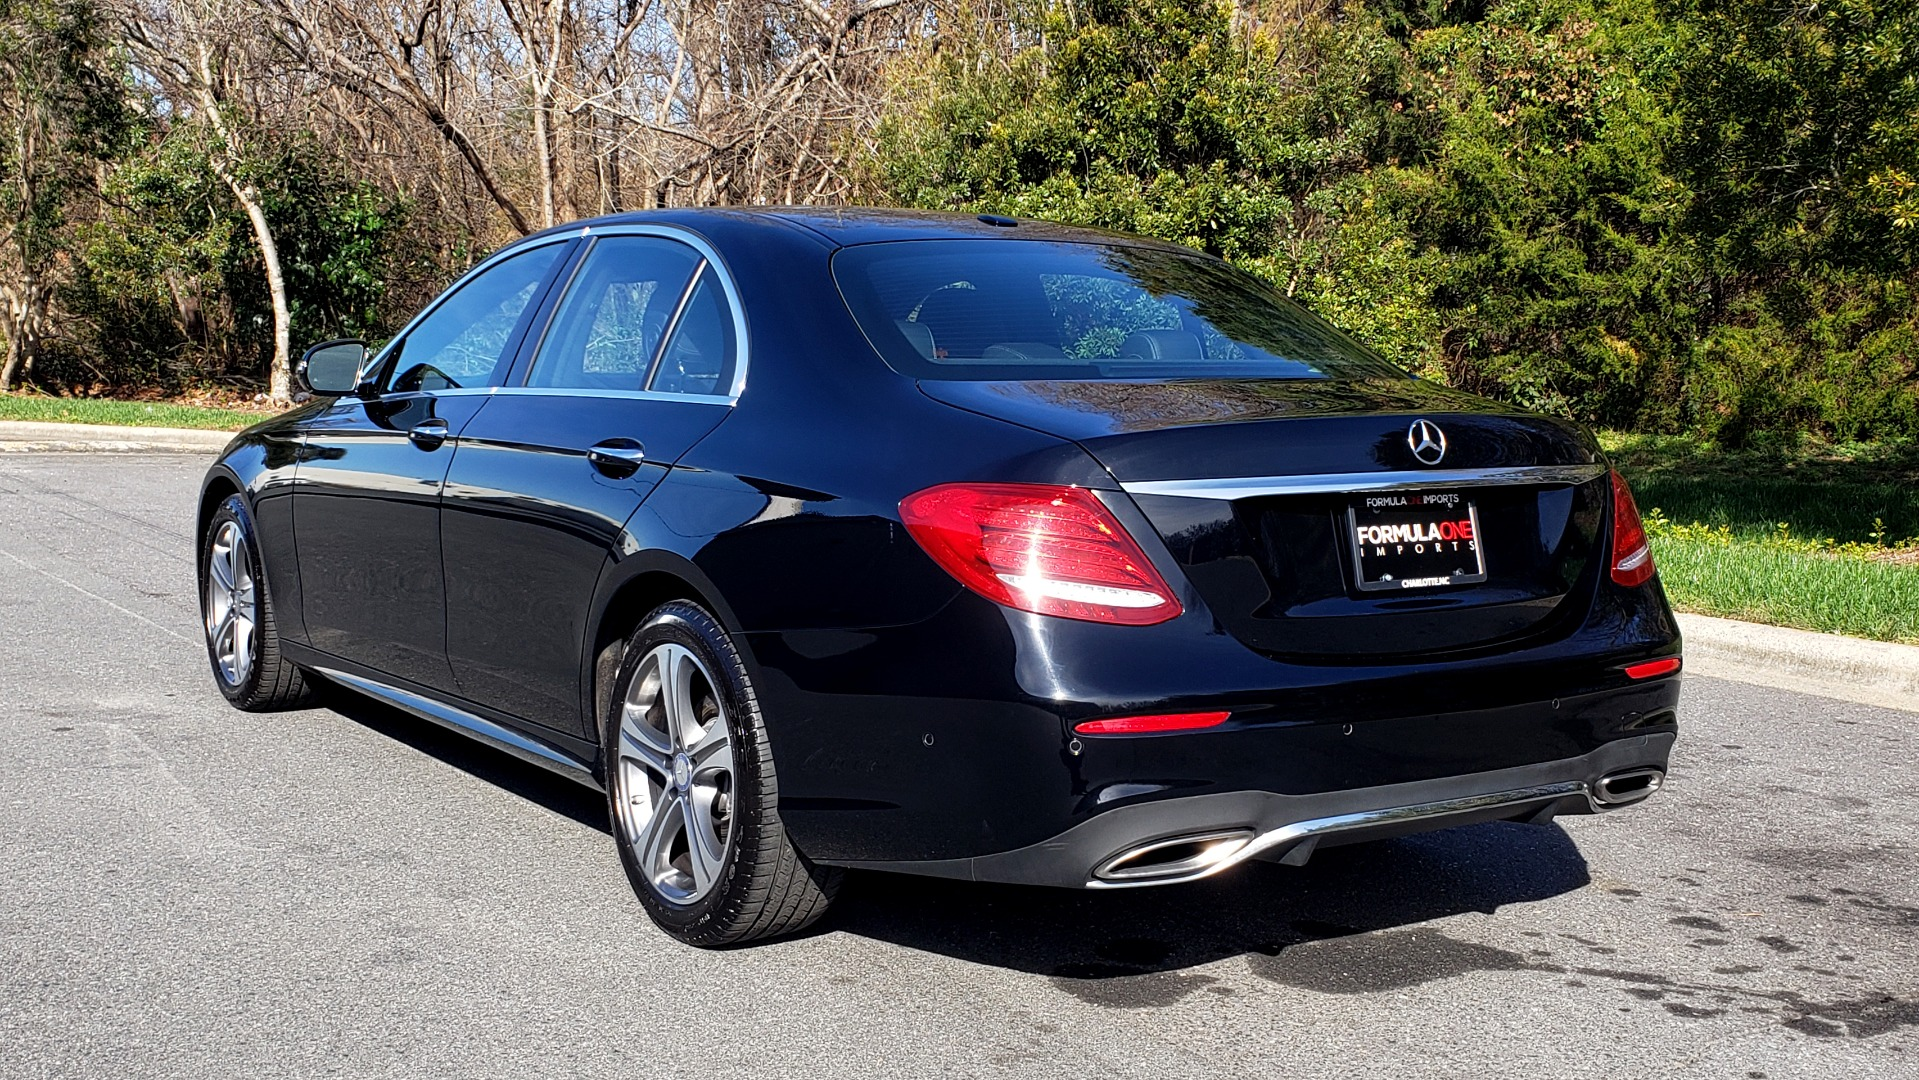 Used 2017 Mercedes-Benz E-CLASS E 300 PREMIUM / NAV / SUNROOF / BURMESTER / HTD STS / REARVIEW for sale Sold at Formula Imports in Charlotte NC 28227 3